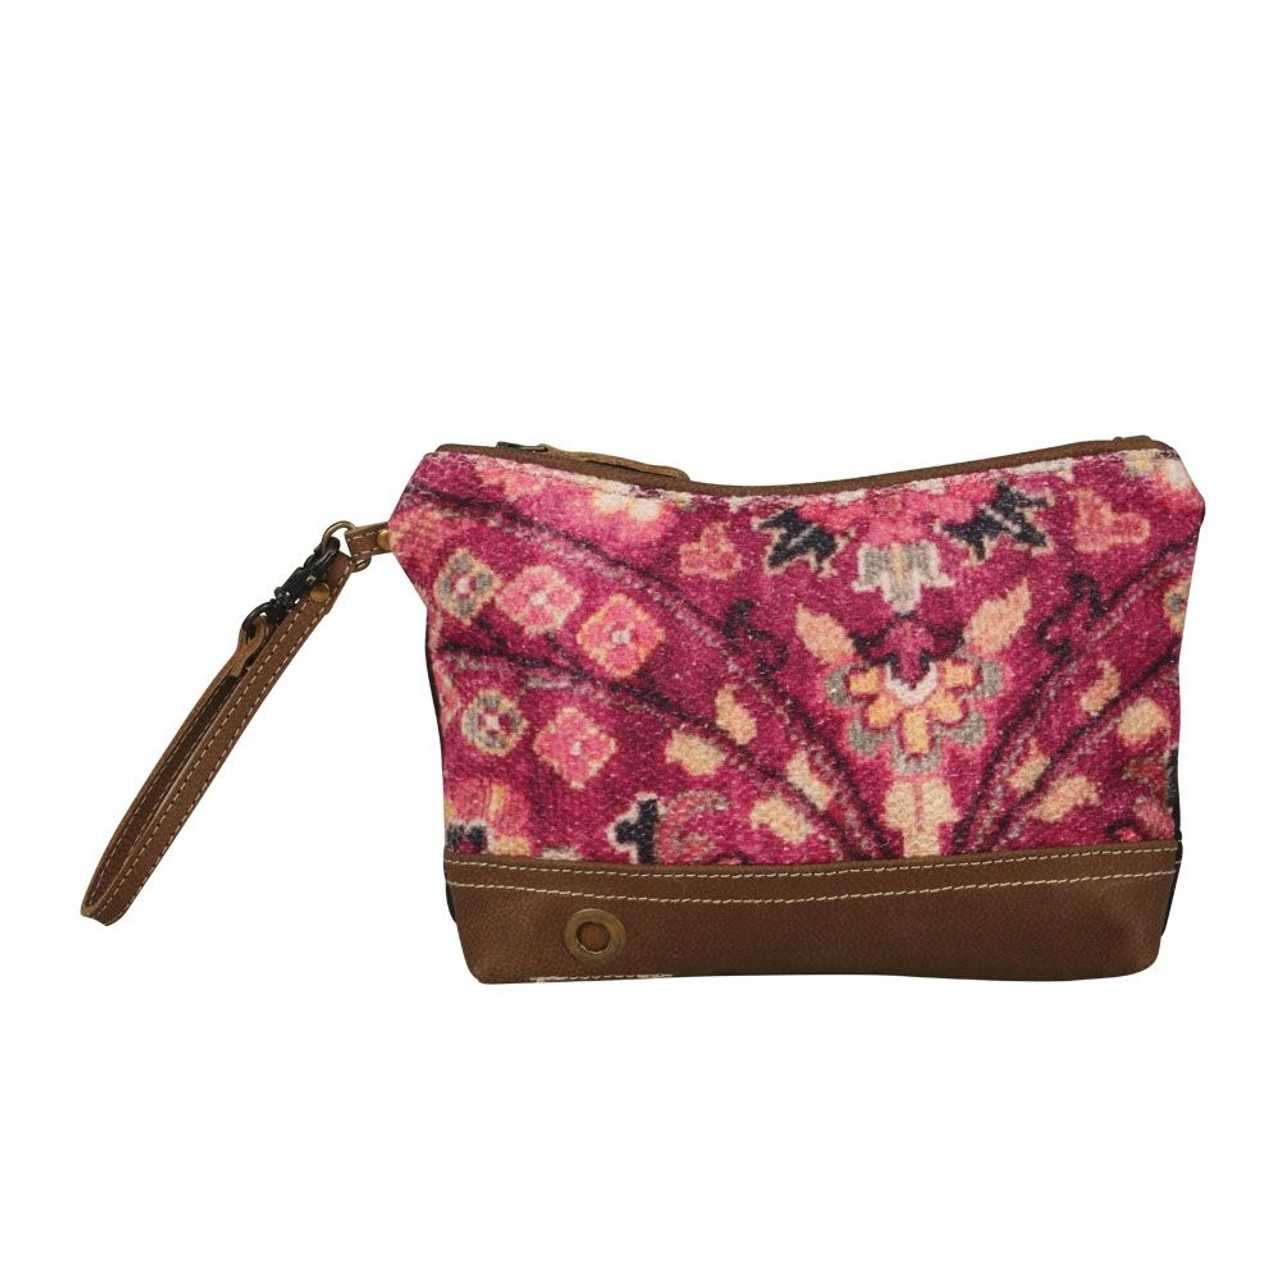 Myra Bags Women S Matchless Floral Pouch Purse S 2119 Jackson S Western Upcycled canvas handbags myra handbags offers a nature friendly canvas & leather handbag. usd